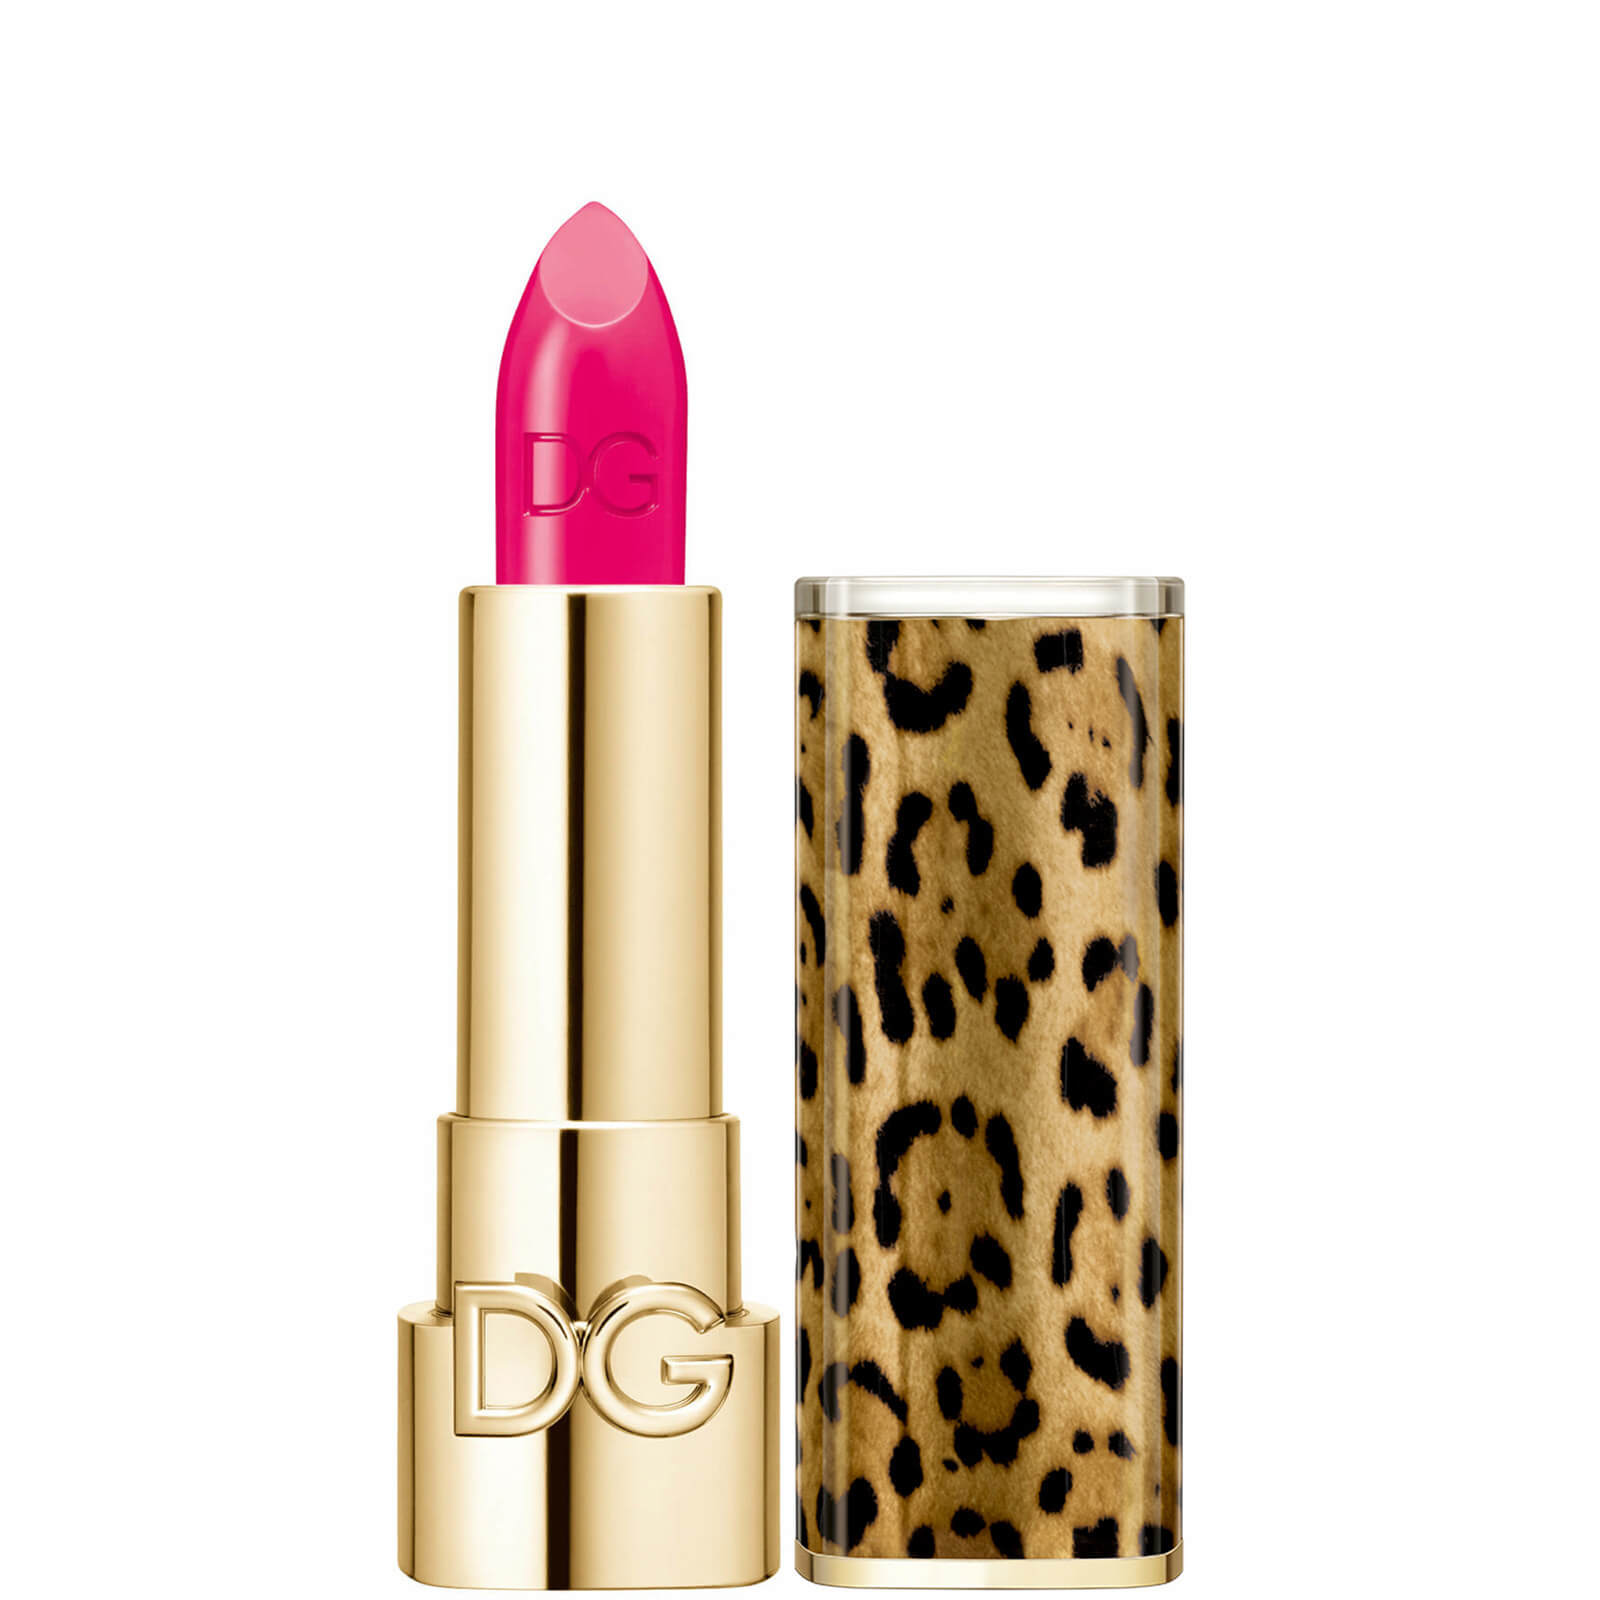 Dolce&Gabbana The Only One Lipstick + Cap (Animalier) (Various Shades) - 280 Shock Flamingo